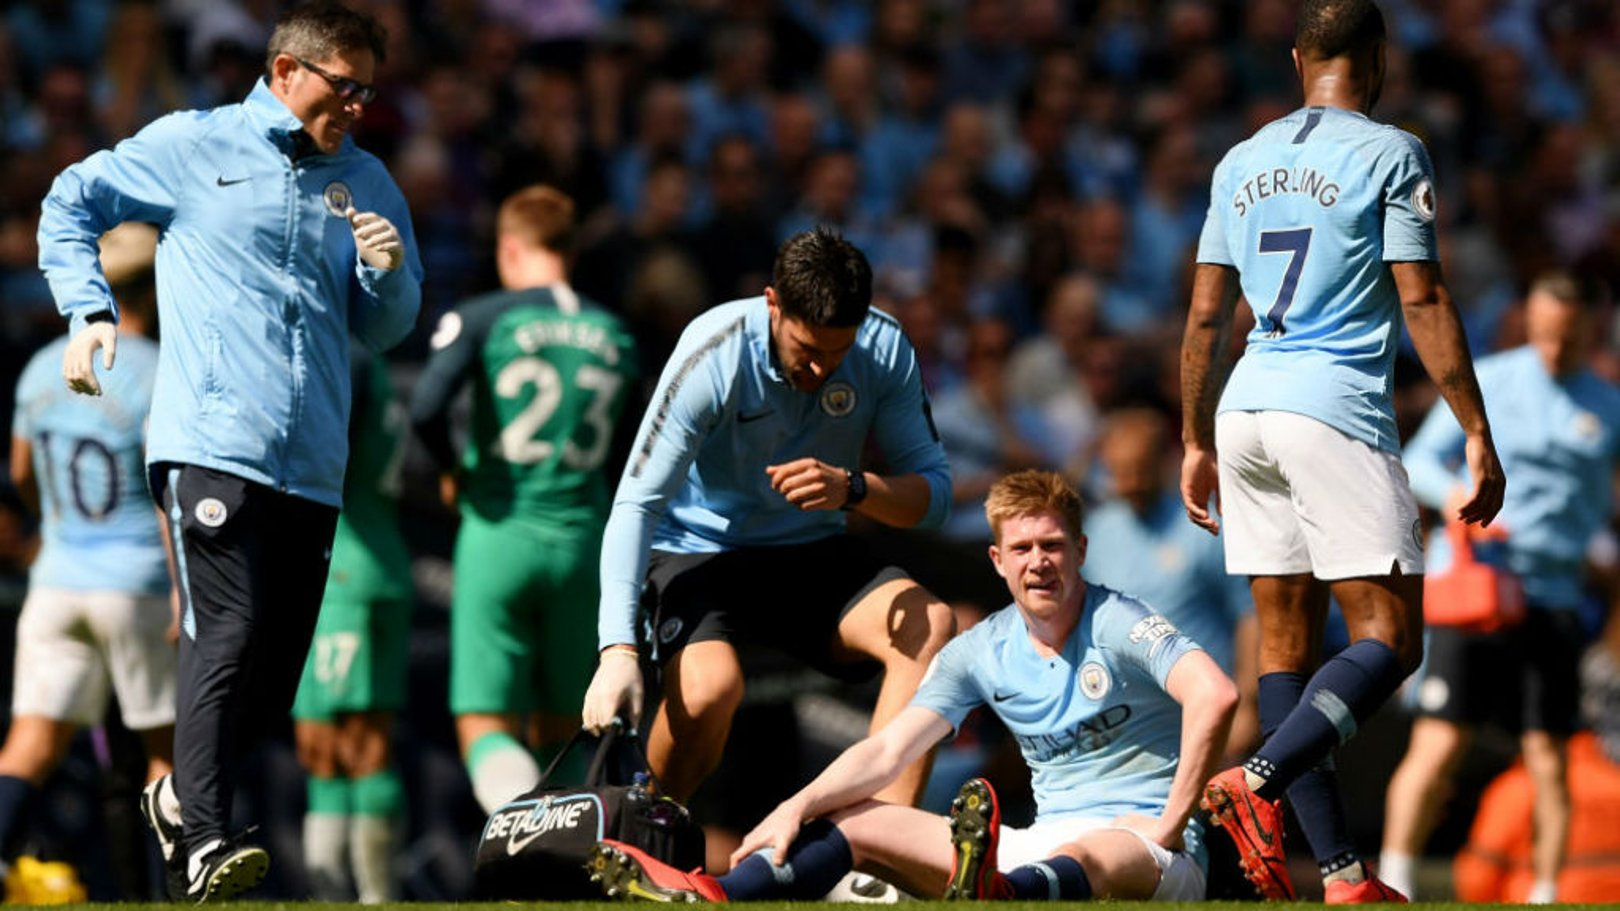 CONCERN: The one blight on the first half was the sight of Kevin De Bruyne having to be substituted after a leg injury